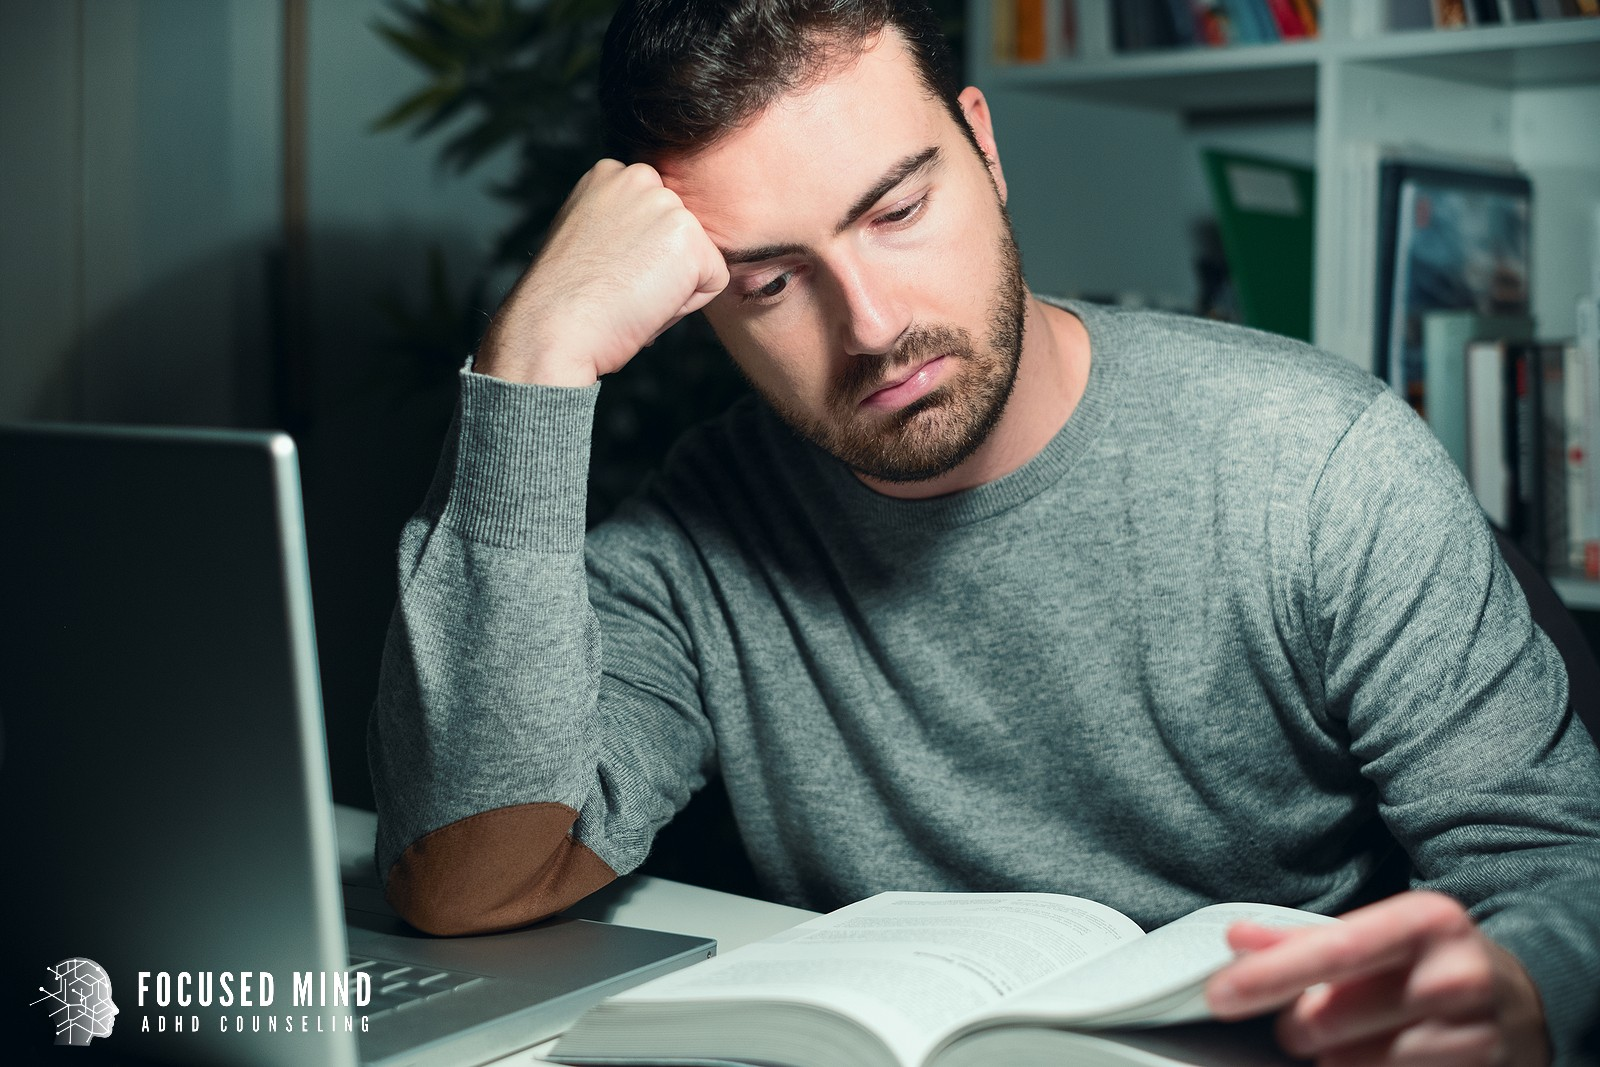 a man resting his head against his hand appears tired as he reads. ADHD therapy in Columbus, OH can provide support for concentration. Learn more about our adult ADHD quiz from an adult ADHD therapist in Ohio.